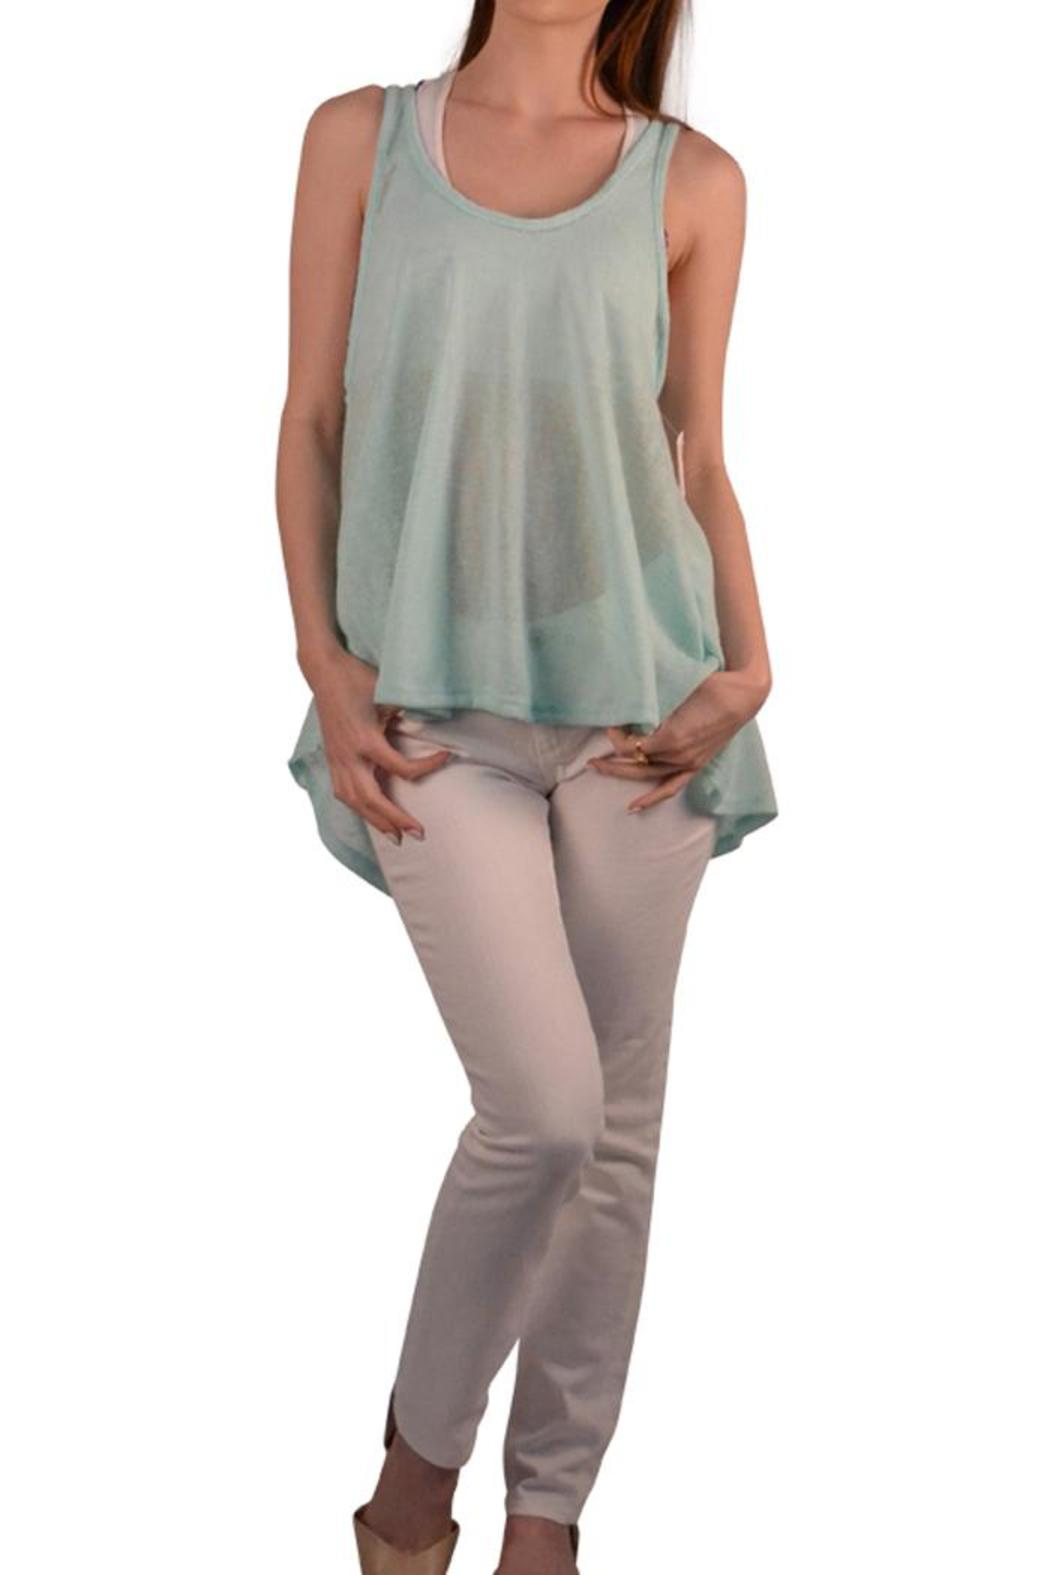 ppla clothing mint tank from lafayette by brothers on